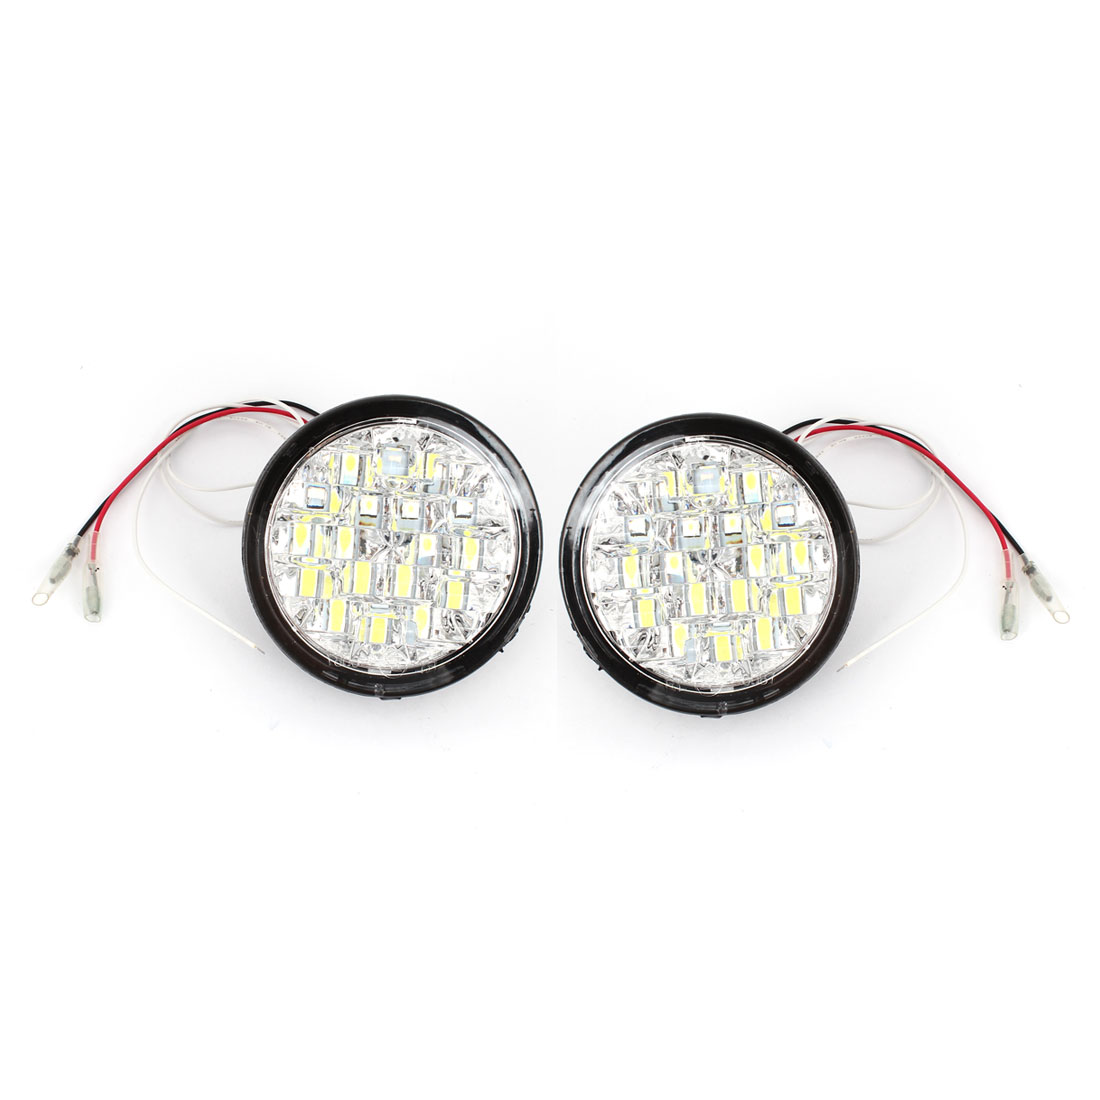 Pair Car White 18 LED 5050 SMD Round Daytime Running Lamp Headlight DC 12V